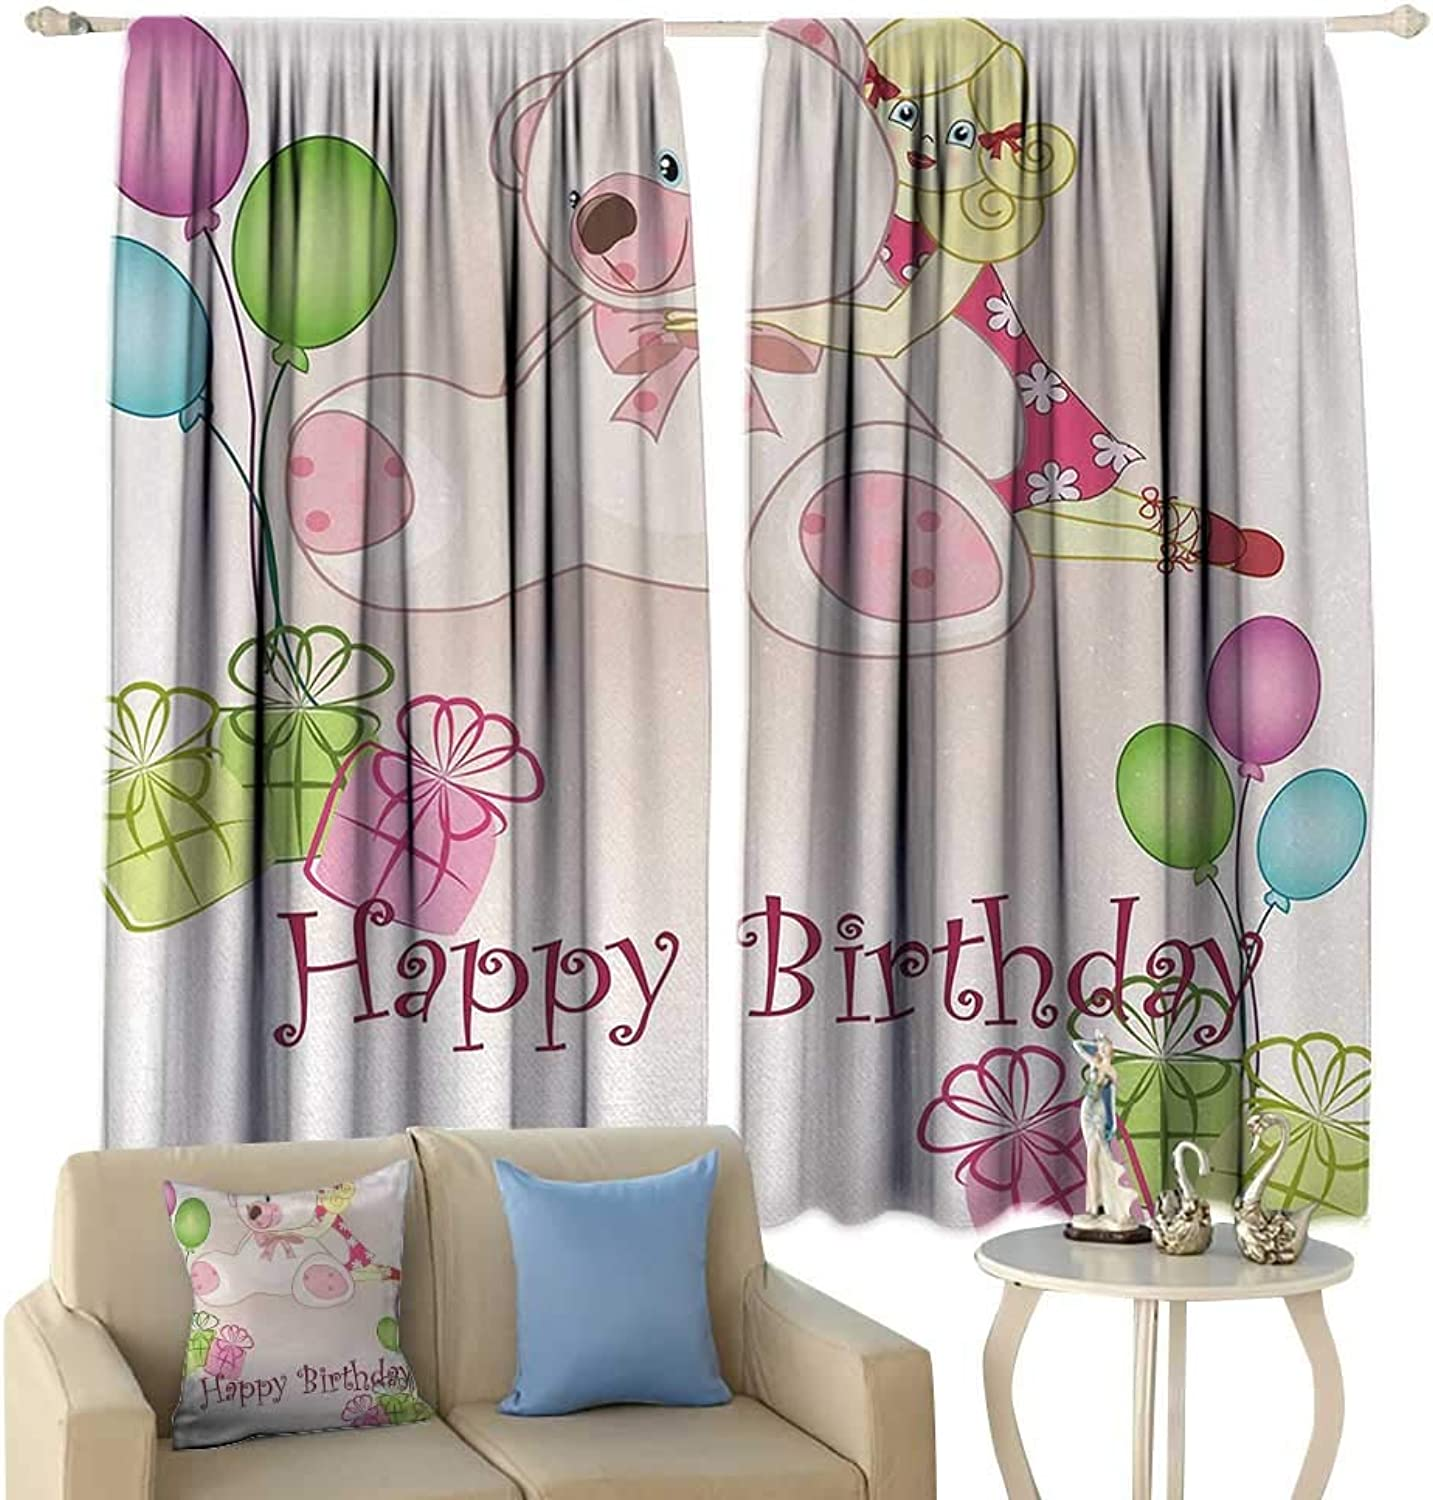 HoBeauty Kids Birthday, Thermal Insulating Blackout Curtain, Baby Girl Birthday with Teddy Bears Toys Balloons Surprise Boxes Dolls Image, Blackout Draperies for Bedroom,(W55 x L63 Inch, Light Pink